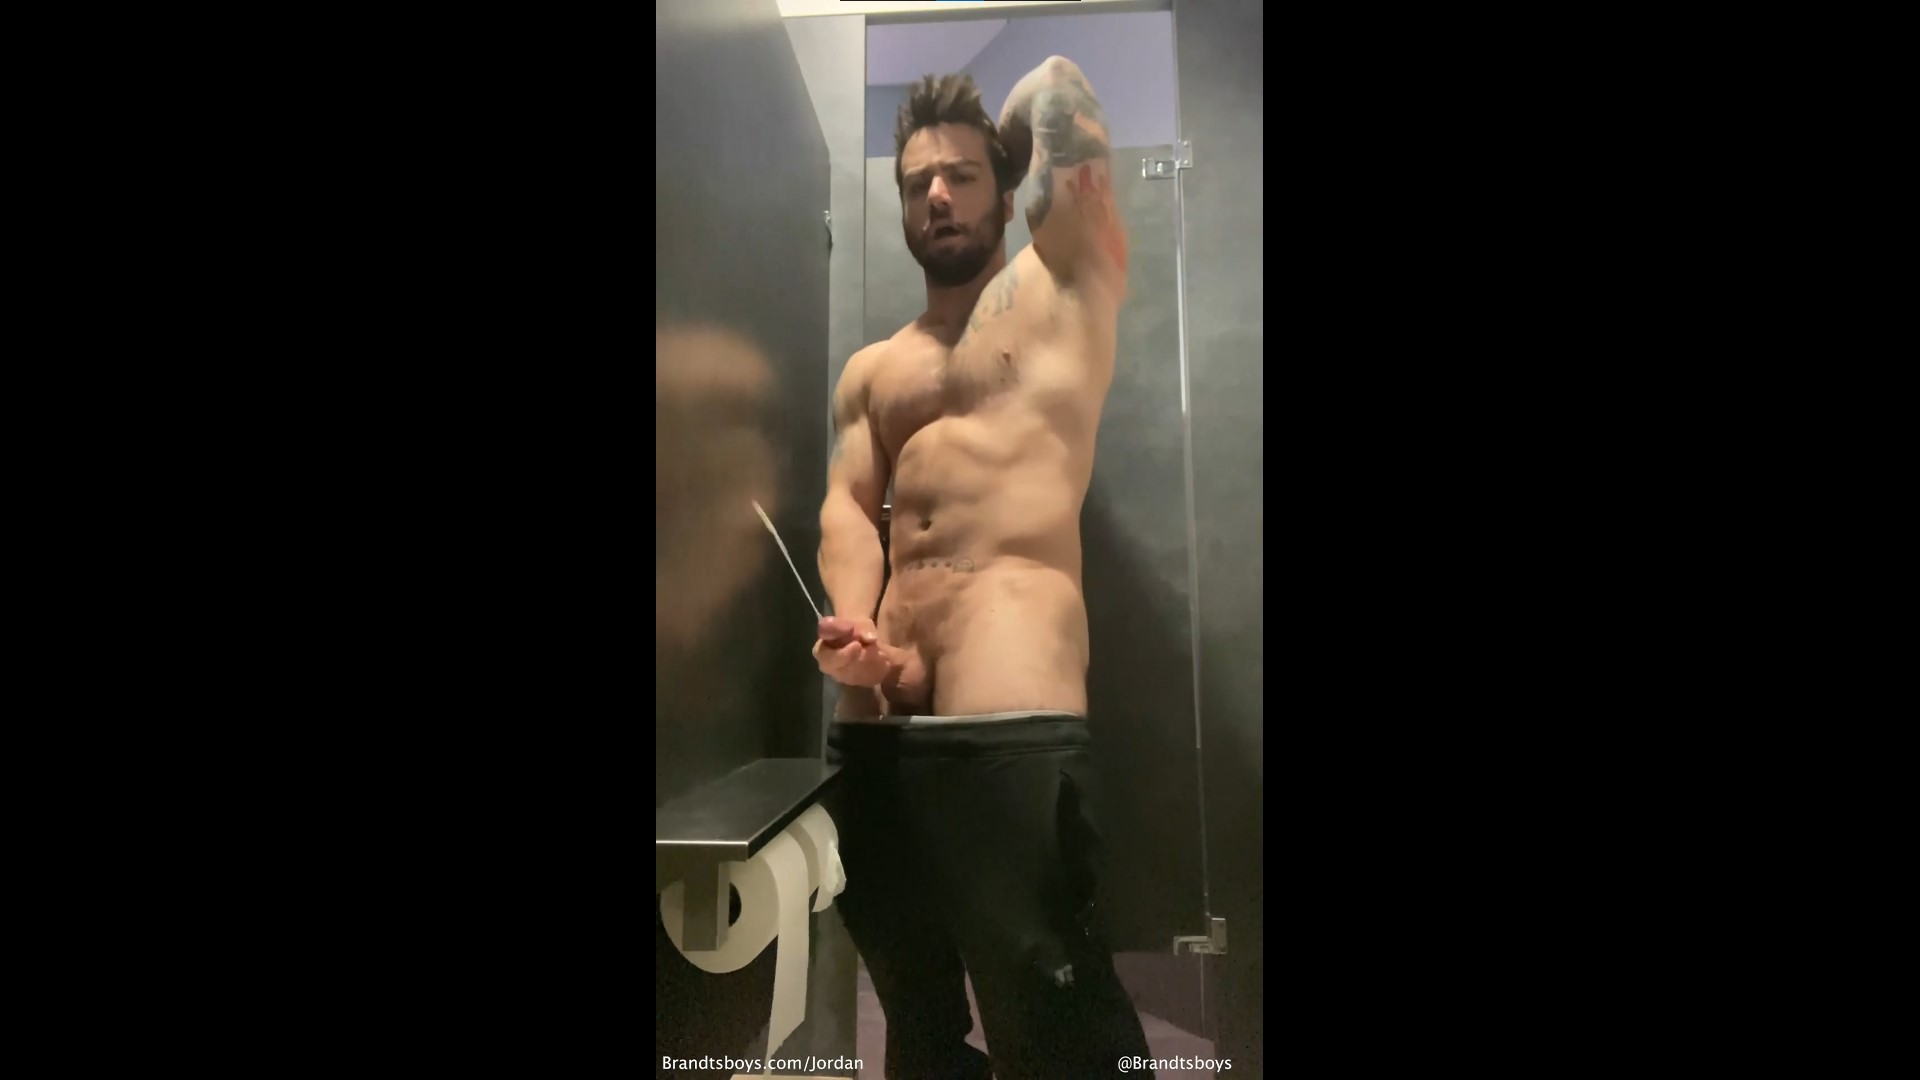 Jerking off in the bathroom stall at work and almost getting caught - JordanxBrandt